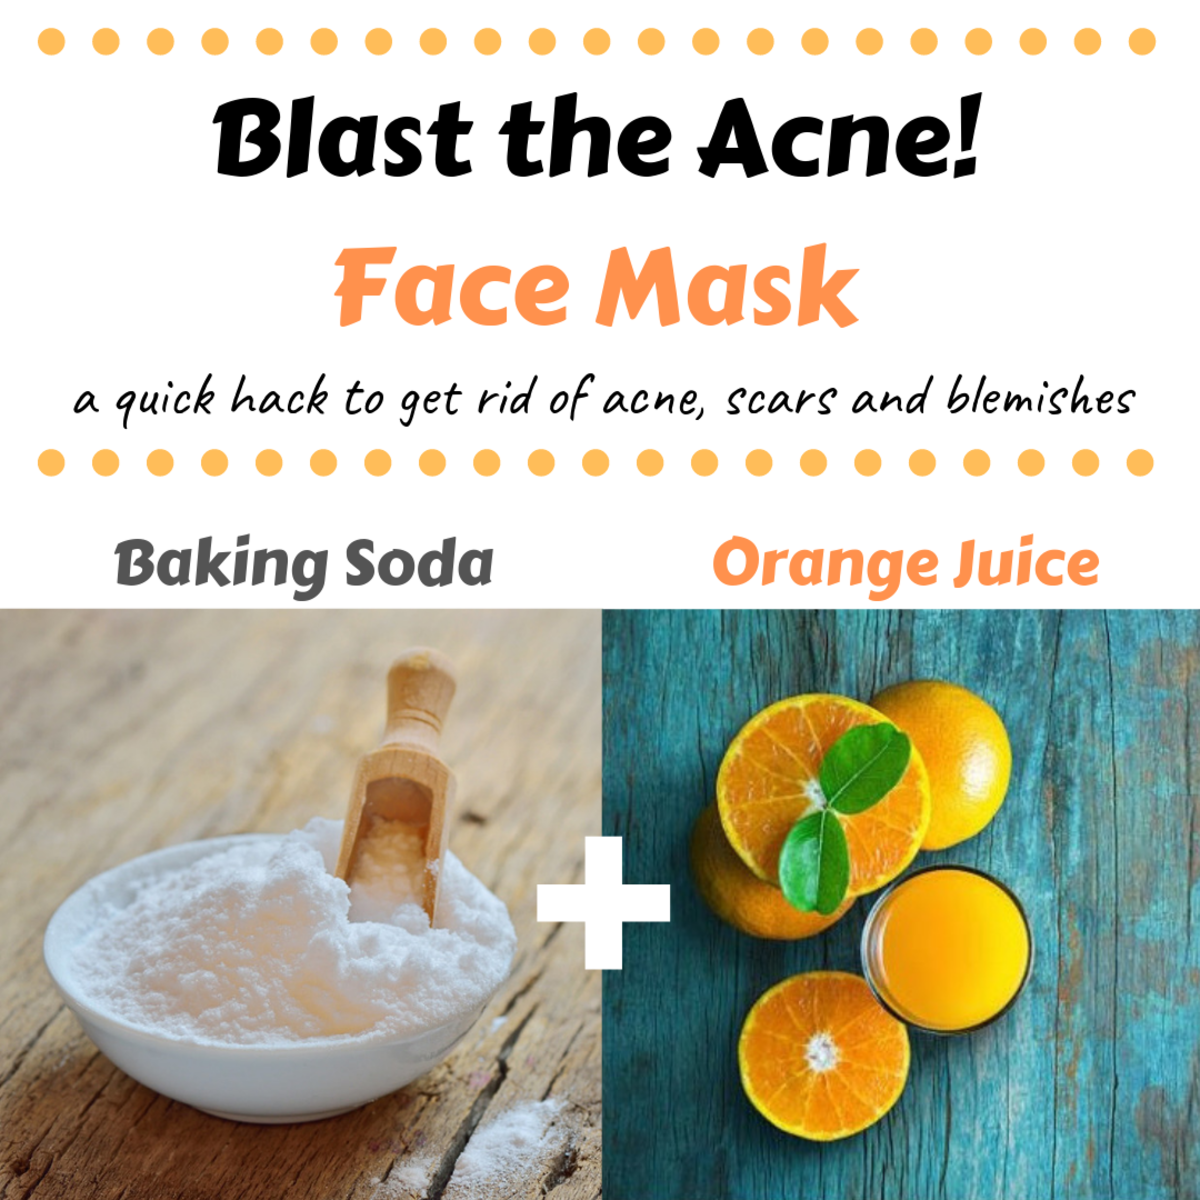 This is a great mask for eliminating acne, blackheads, pimples and acne scars!